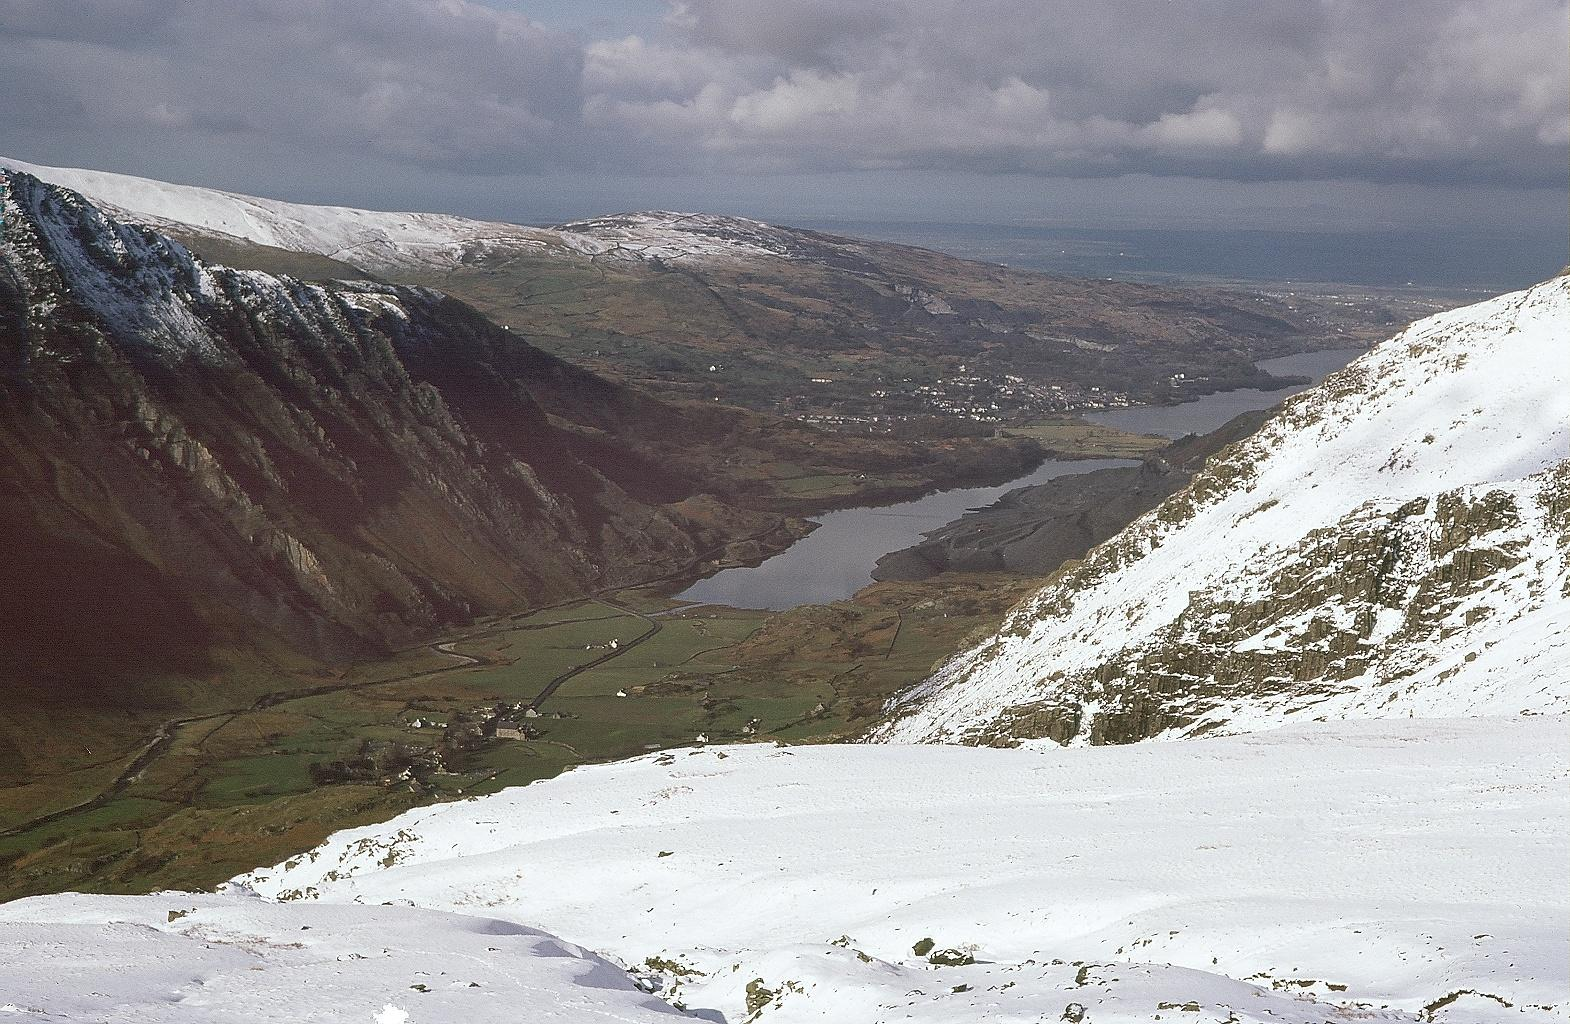 Llanberis and Llyn Peris